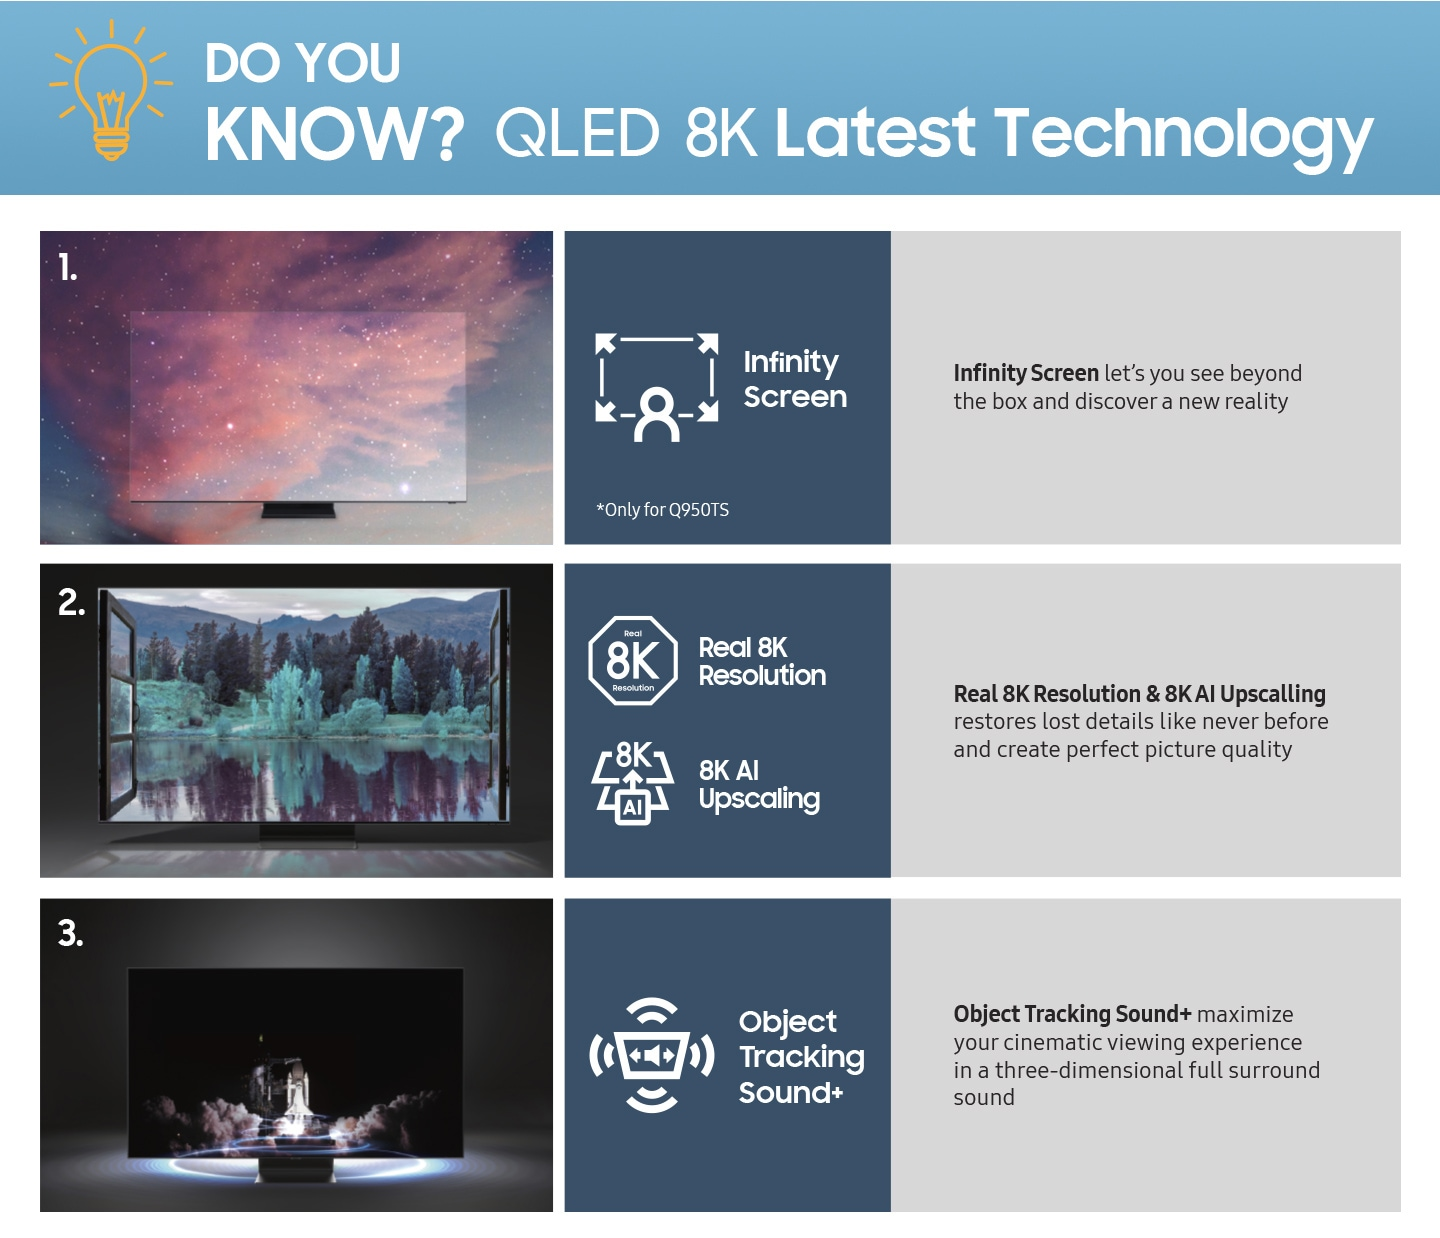 Do you know? QLED 8K LAtest Technology